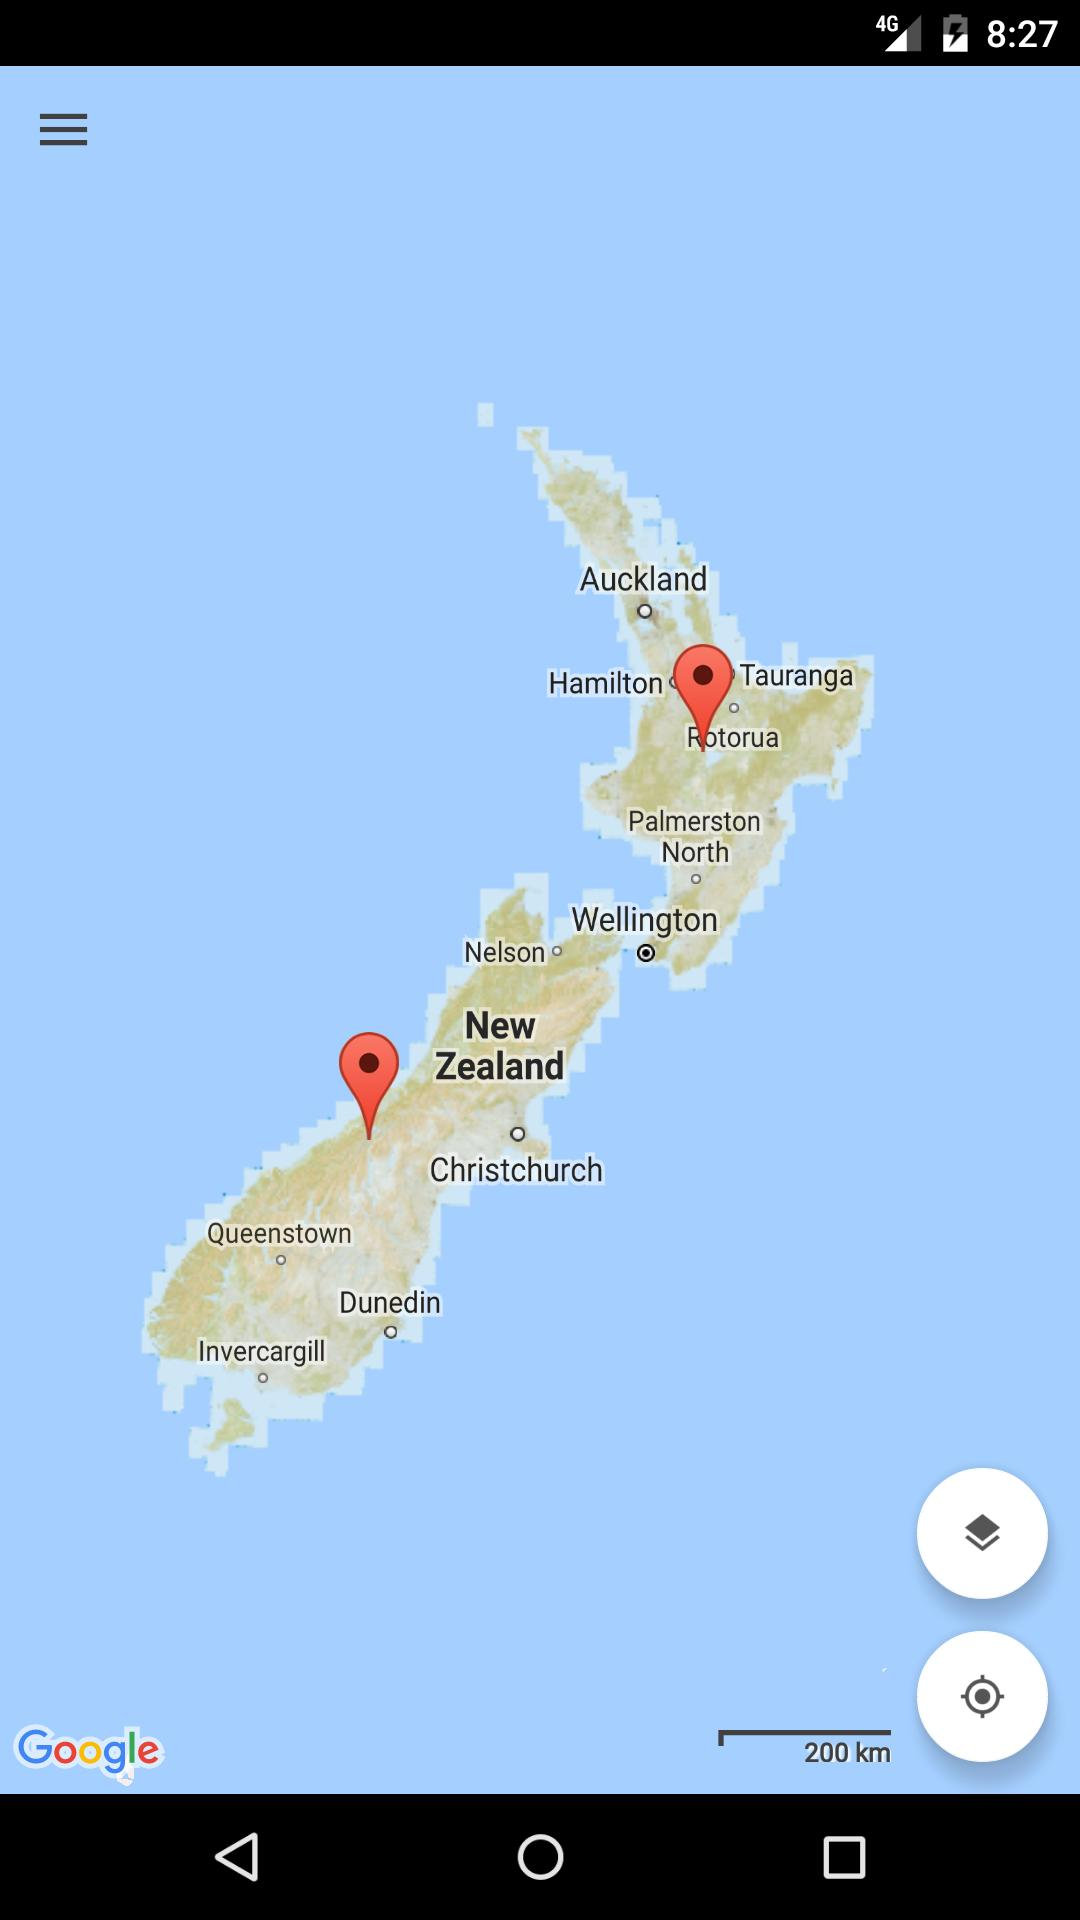 Download New Zealand Map.New Zealand Nz Topo Map For Android Apk Download